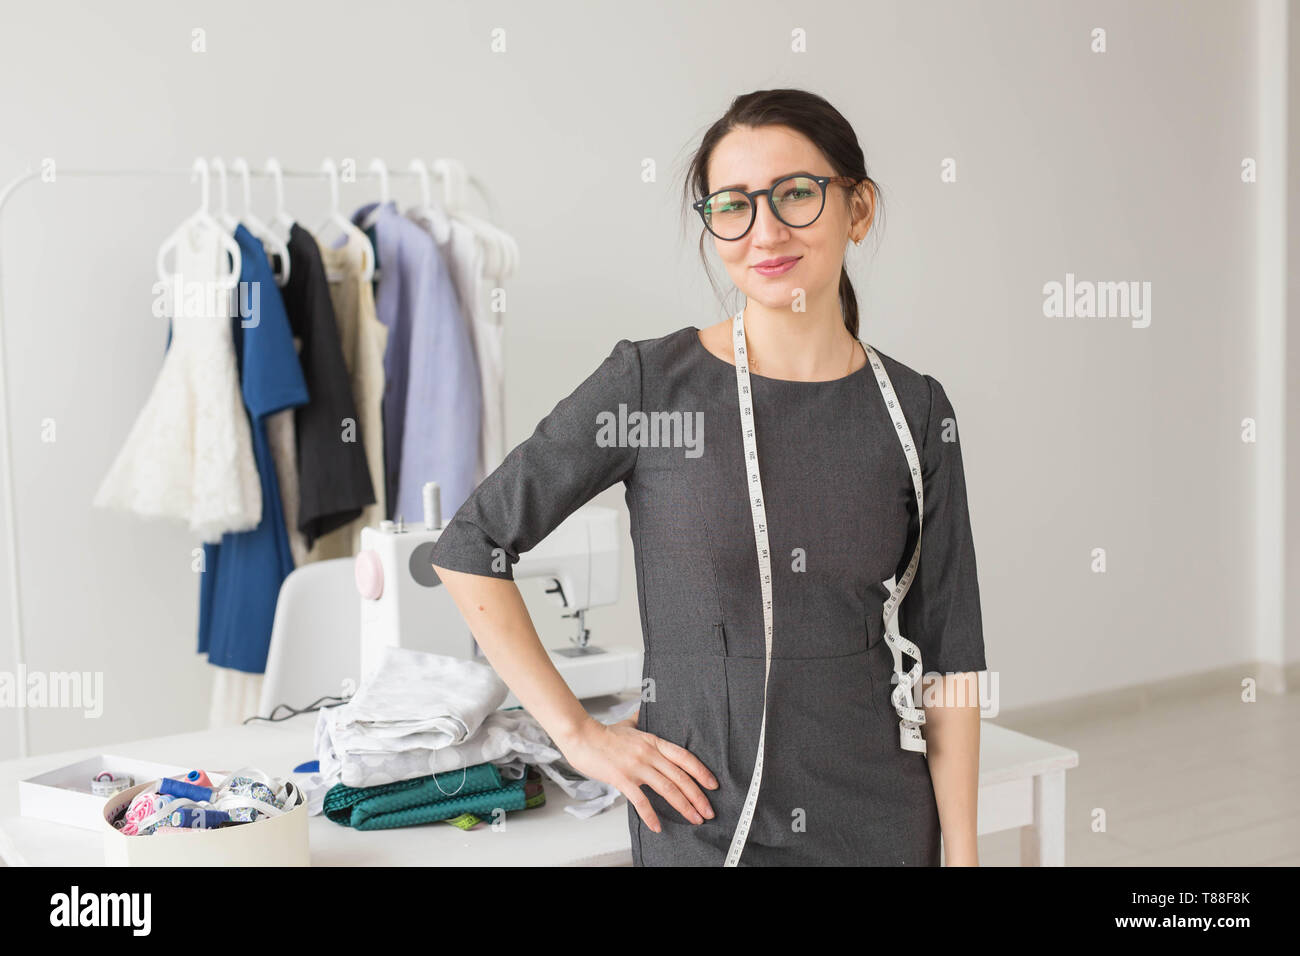 Dressmaker Fashion Designer And Tailor Concept Young Dressmaker Woman Over Clothes Rack With Dresses Background Stock Photo Alamy